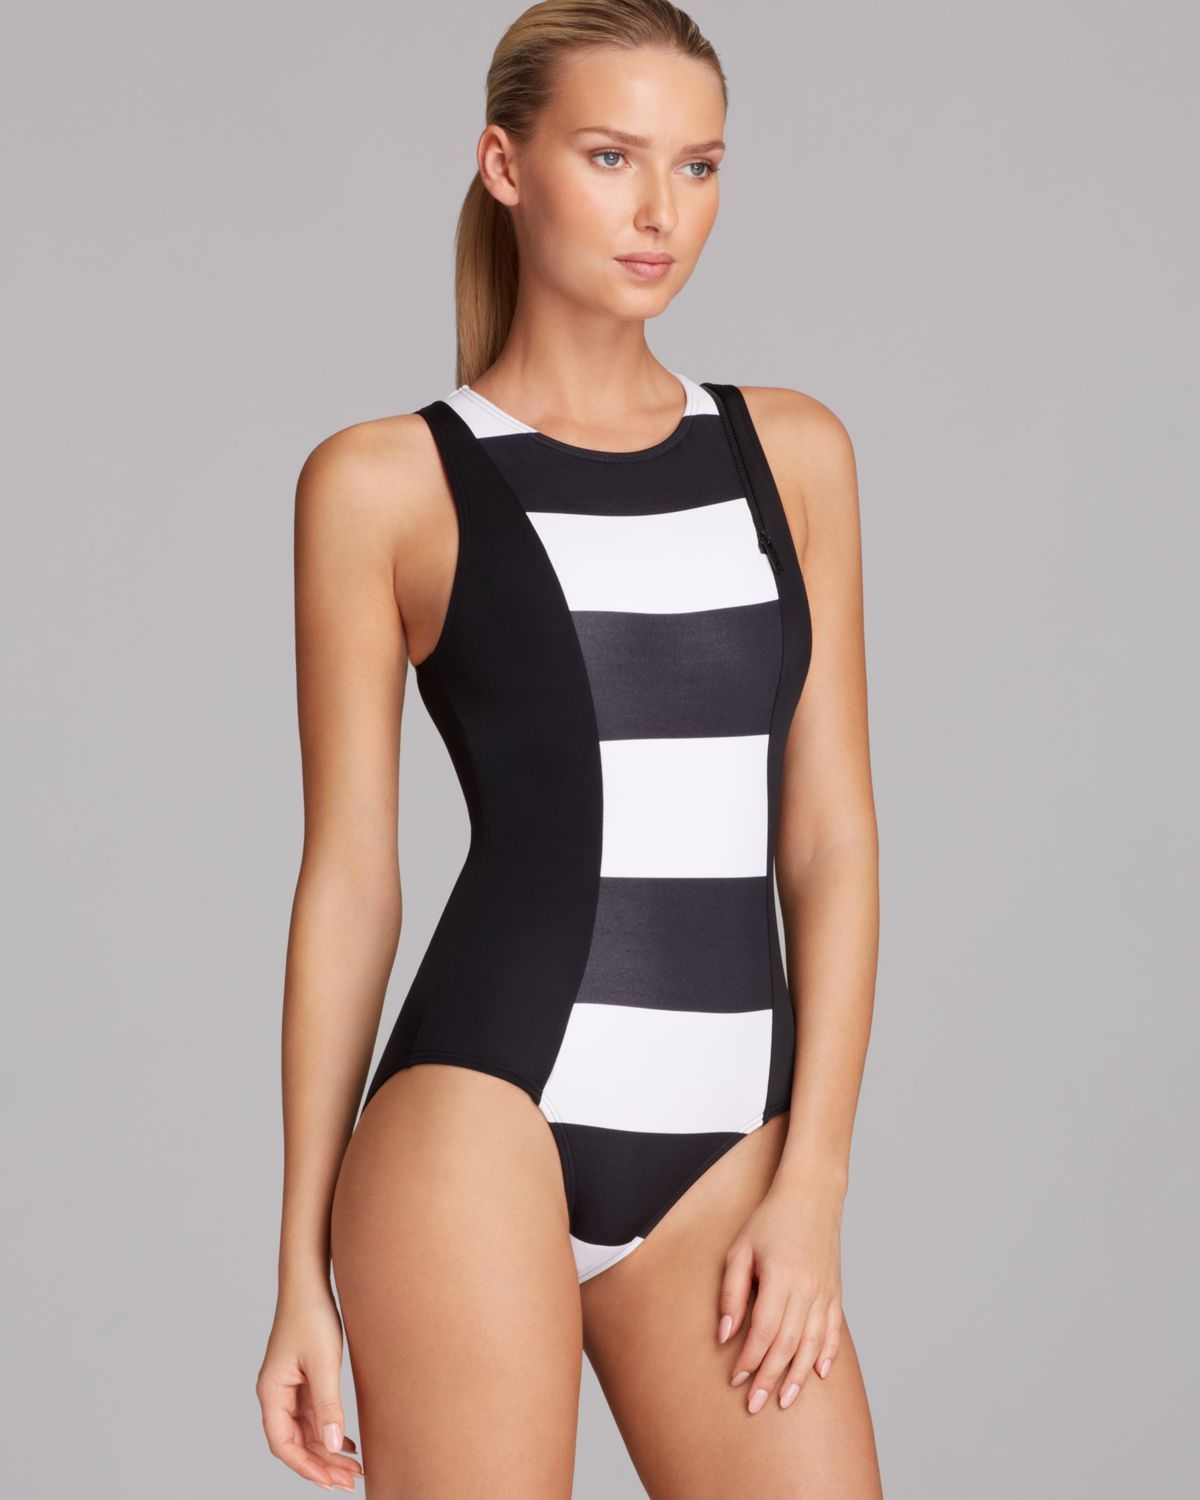 Dkny White Lorimer Stripe High Neck Maillot One Piece Swimsuit Flattering Swimsuits Swimsuits One Piece Swimsuit